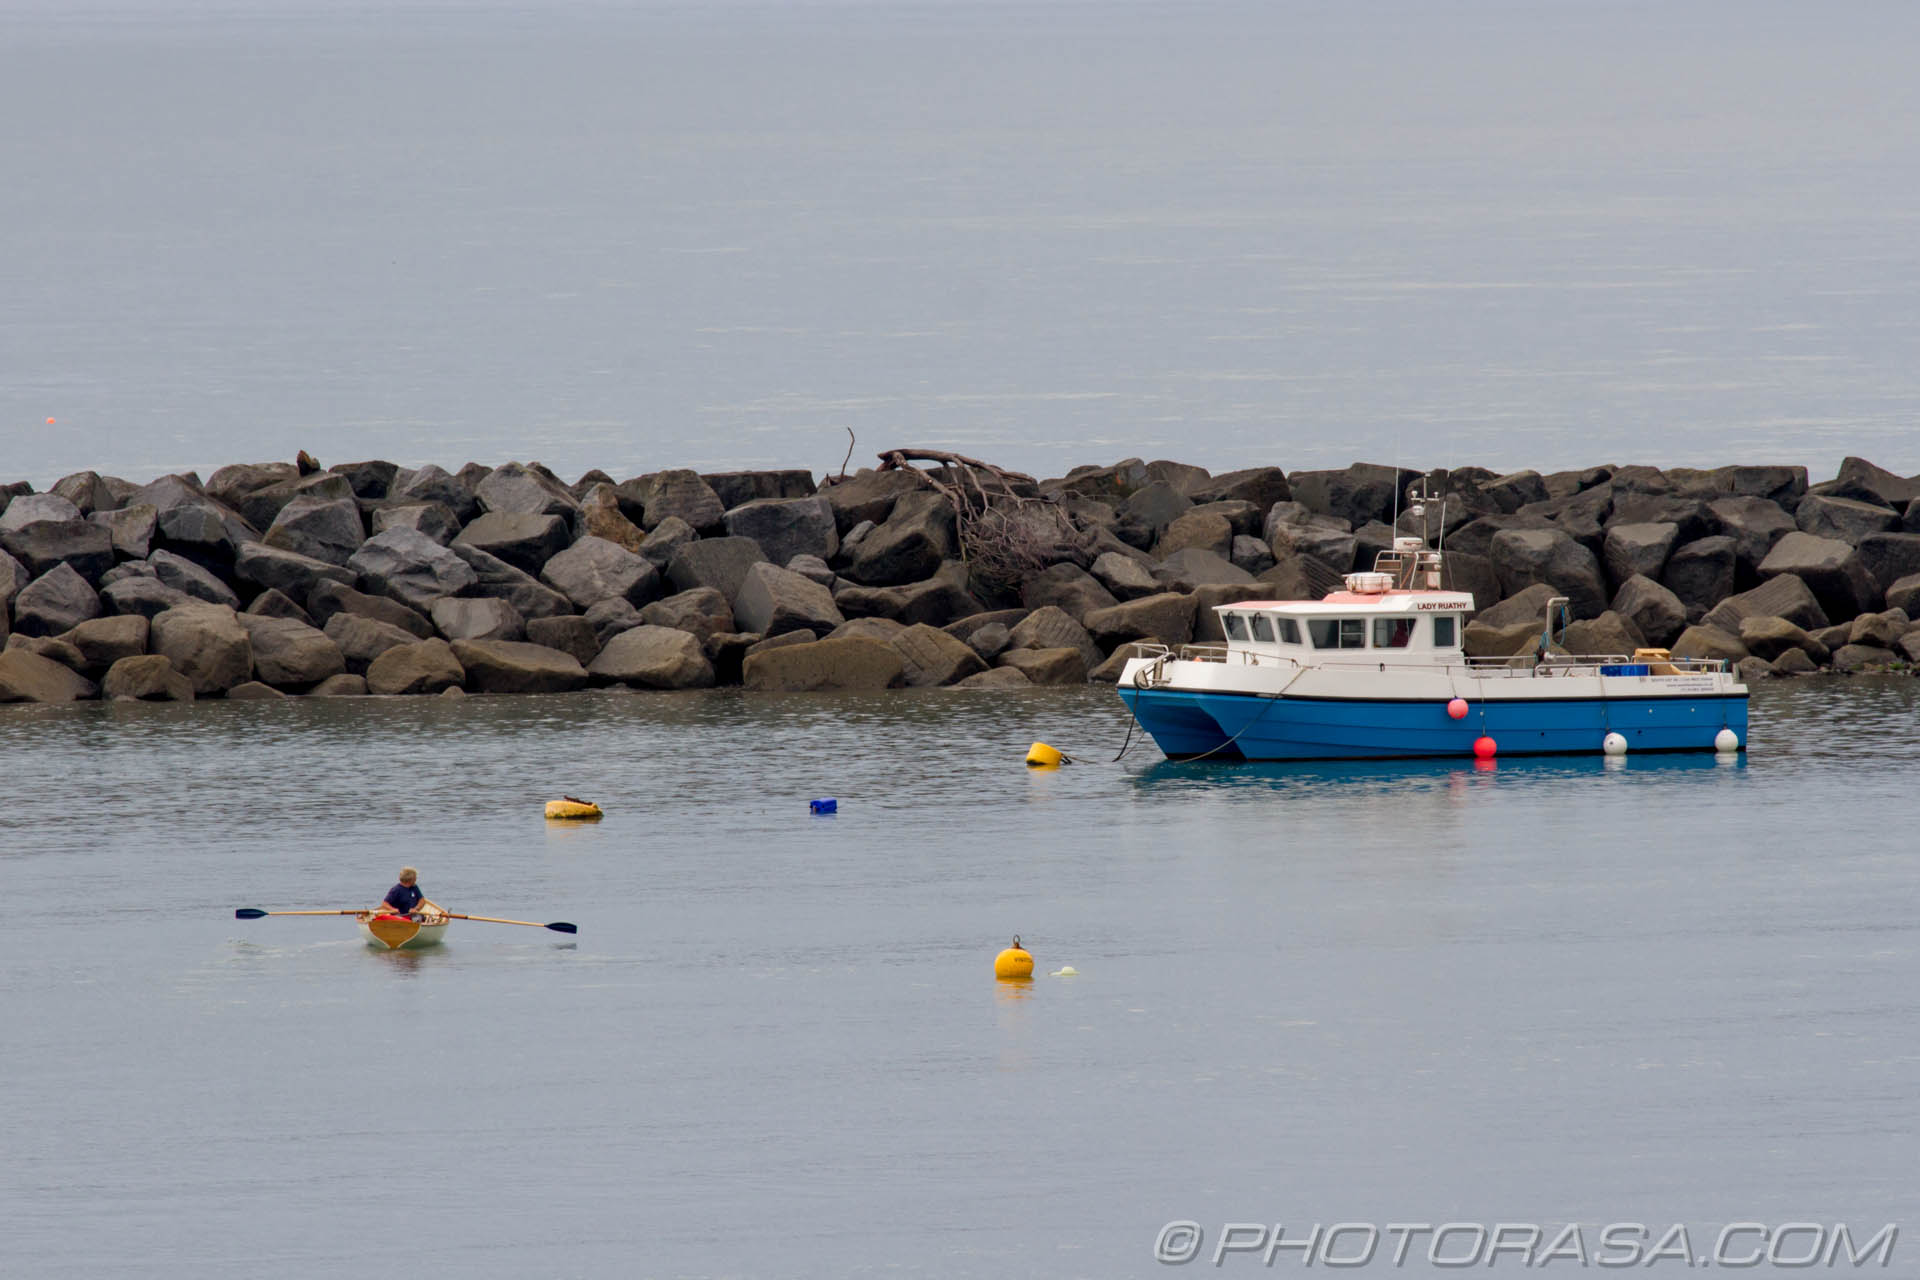 http://photorasa.com/sea-lyme-regis/boats-by-the-rocks/